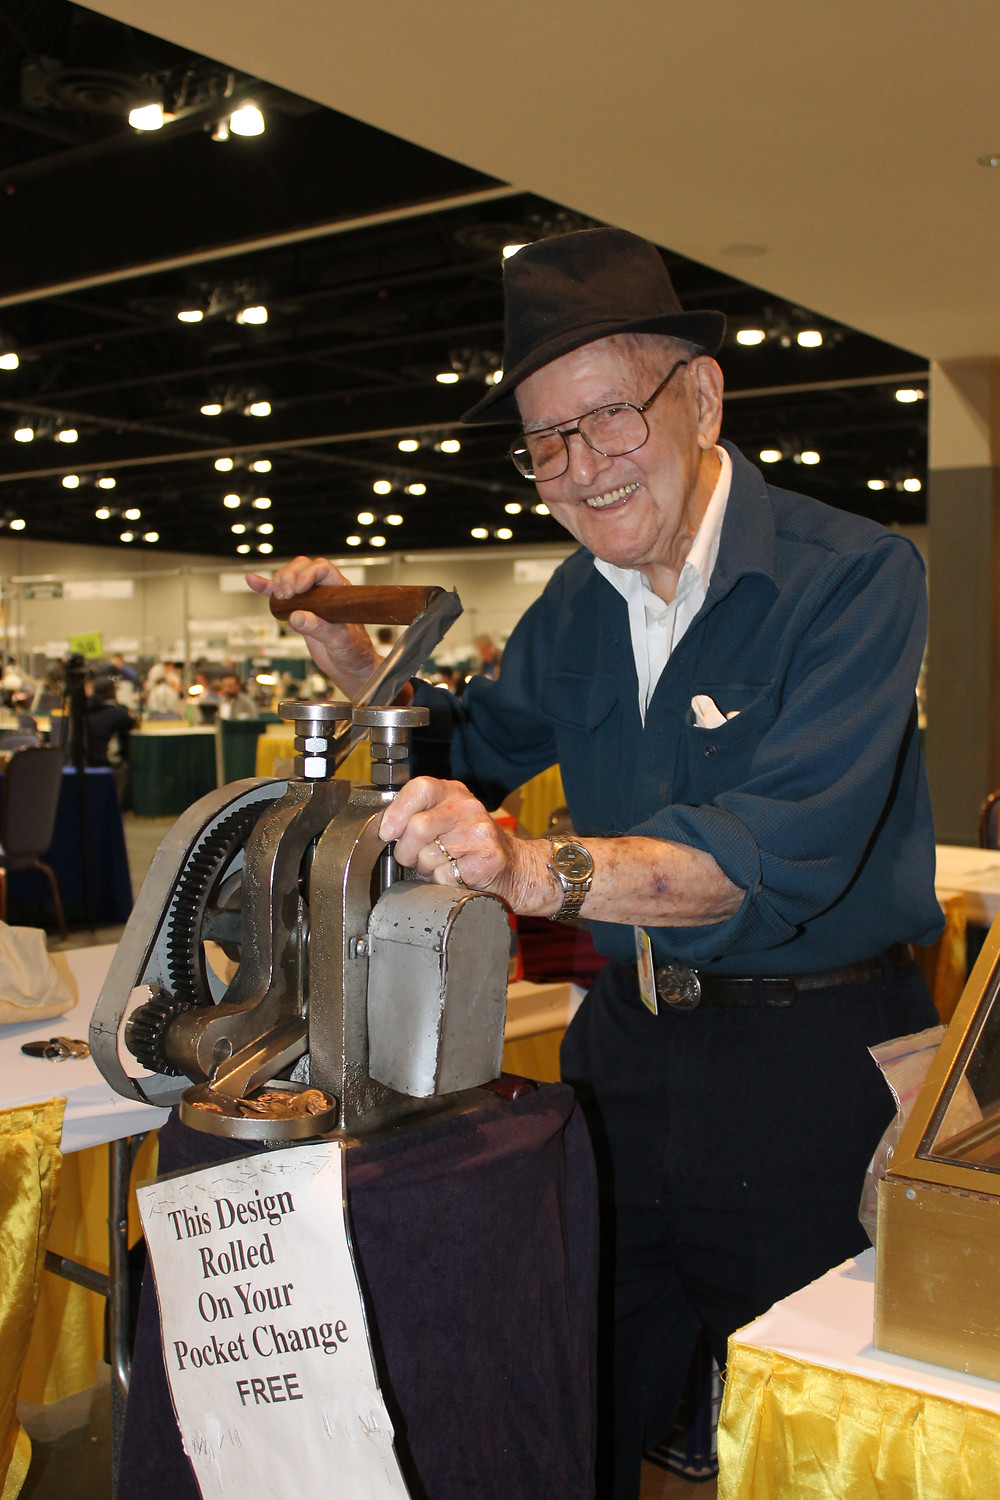 Ray Dillard wearing a fedora, smiling while standing next to a penny rolling machine. Sign on the machine reads this design rolled on your pocket change free.